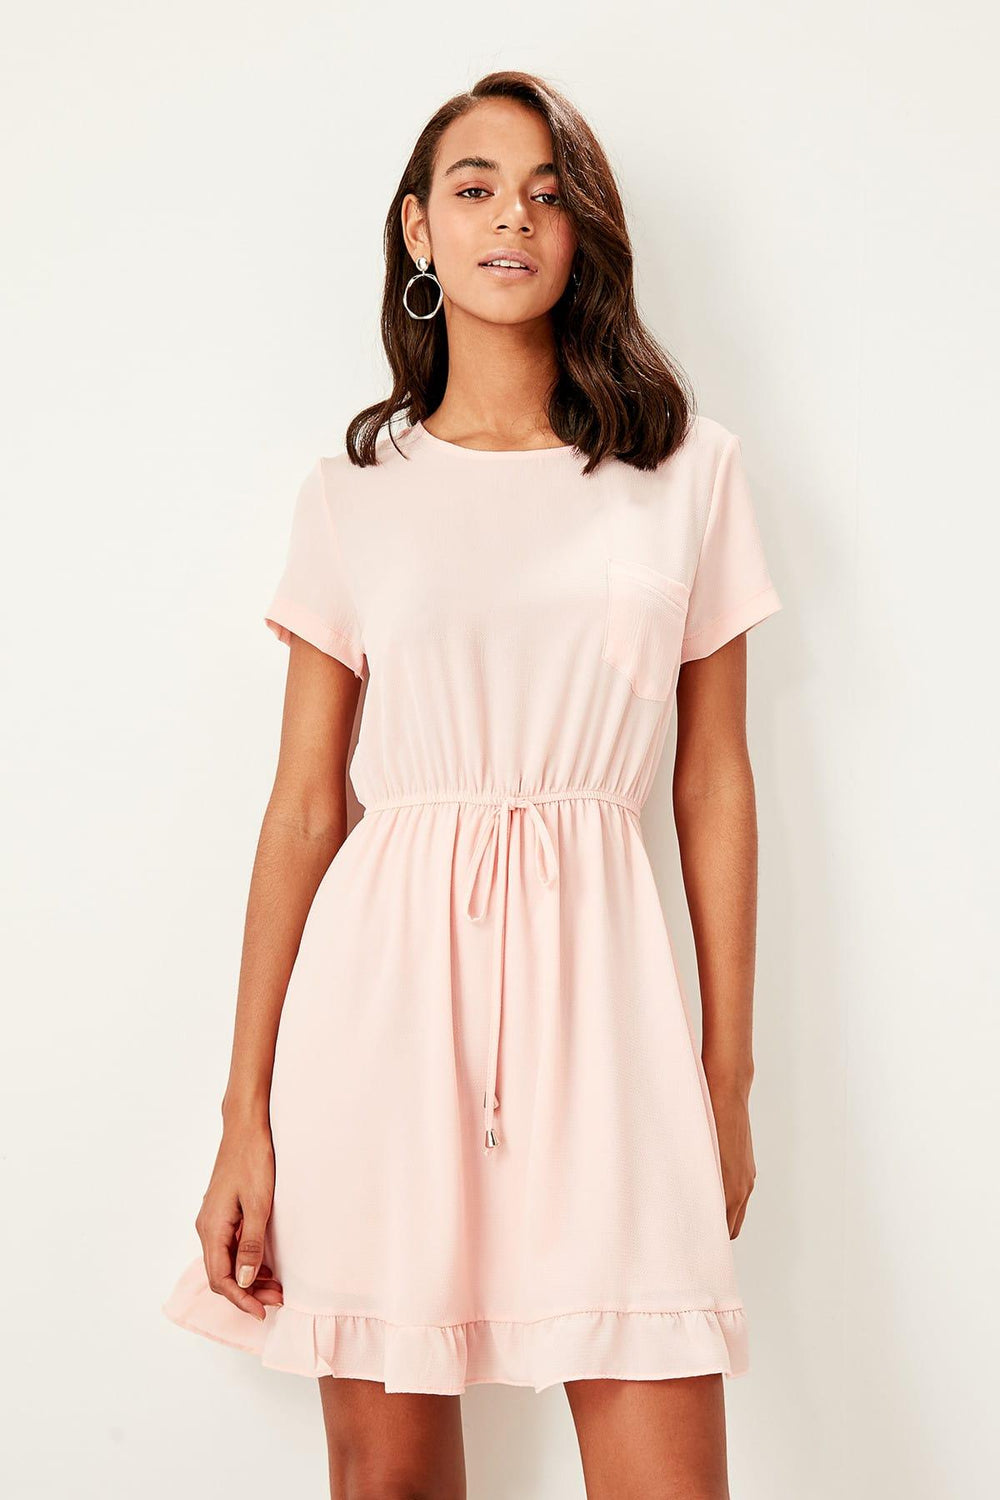 Pink Waist Shirred Dress - Top Maxy